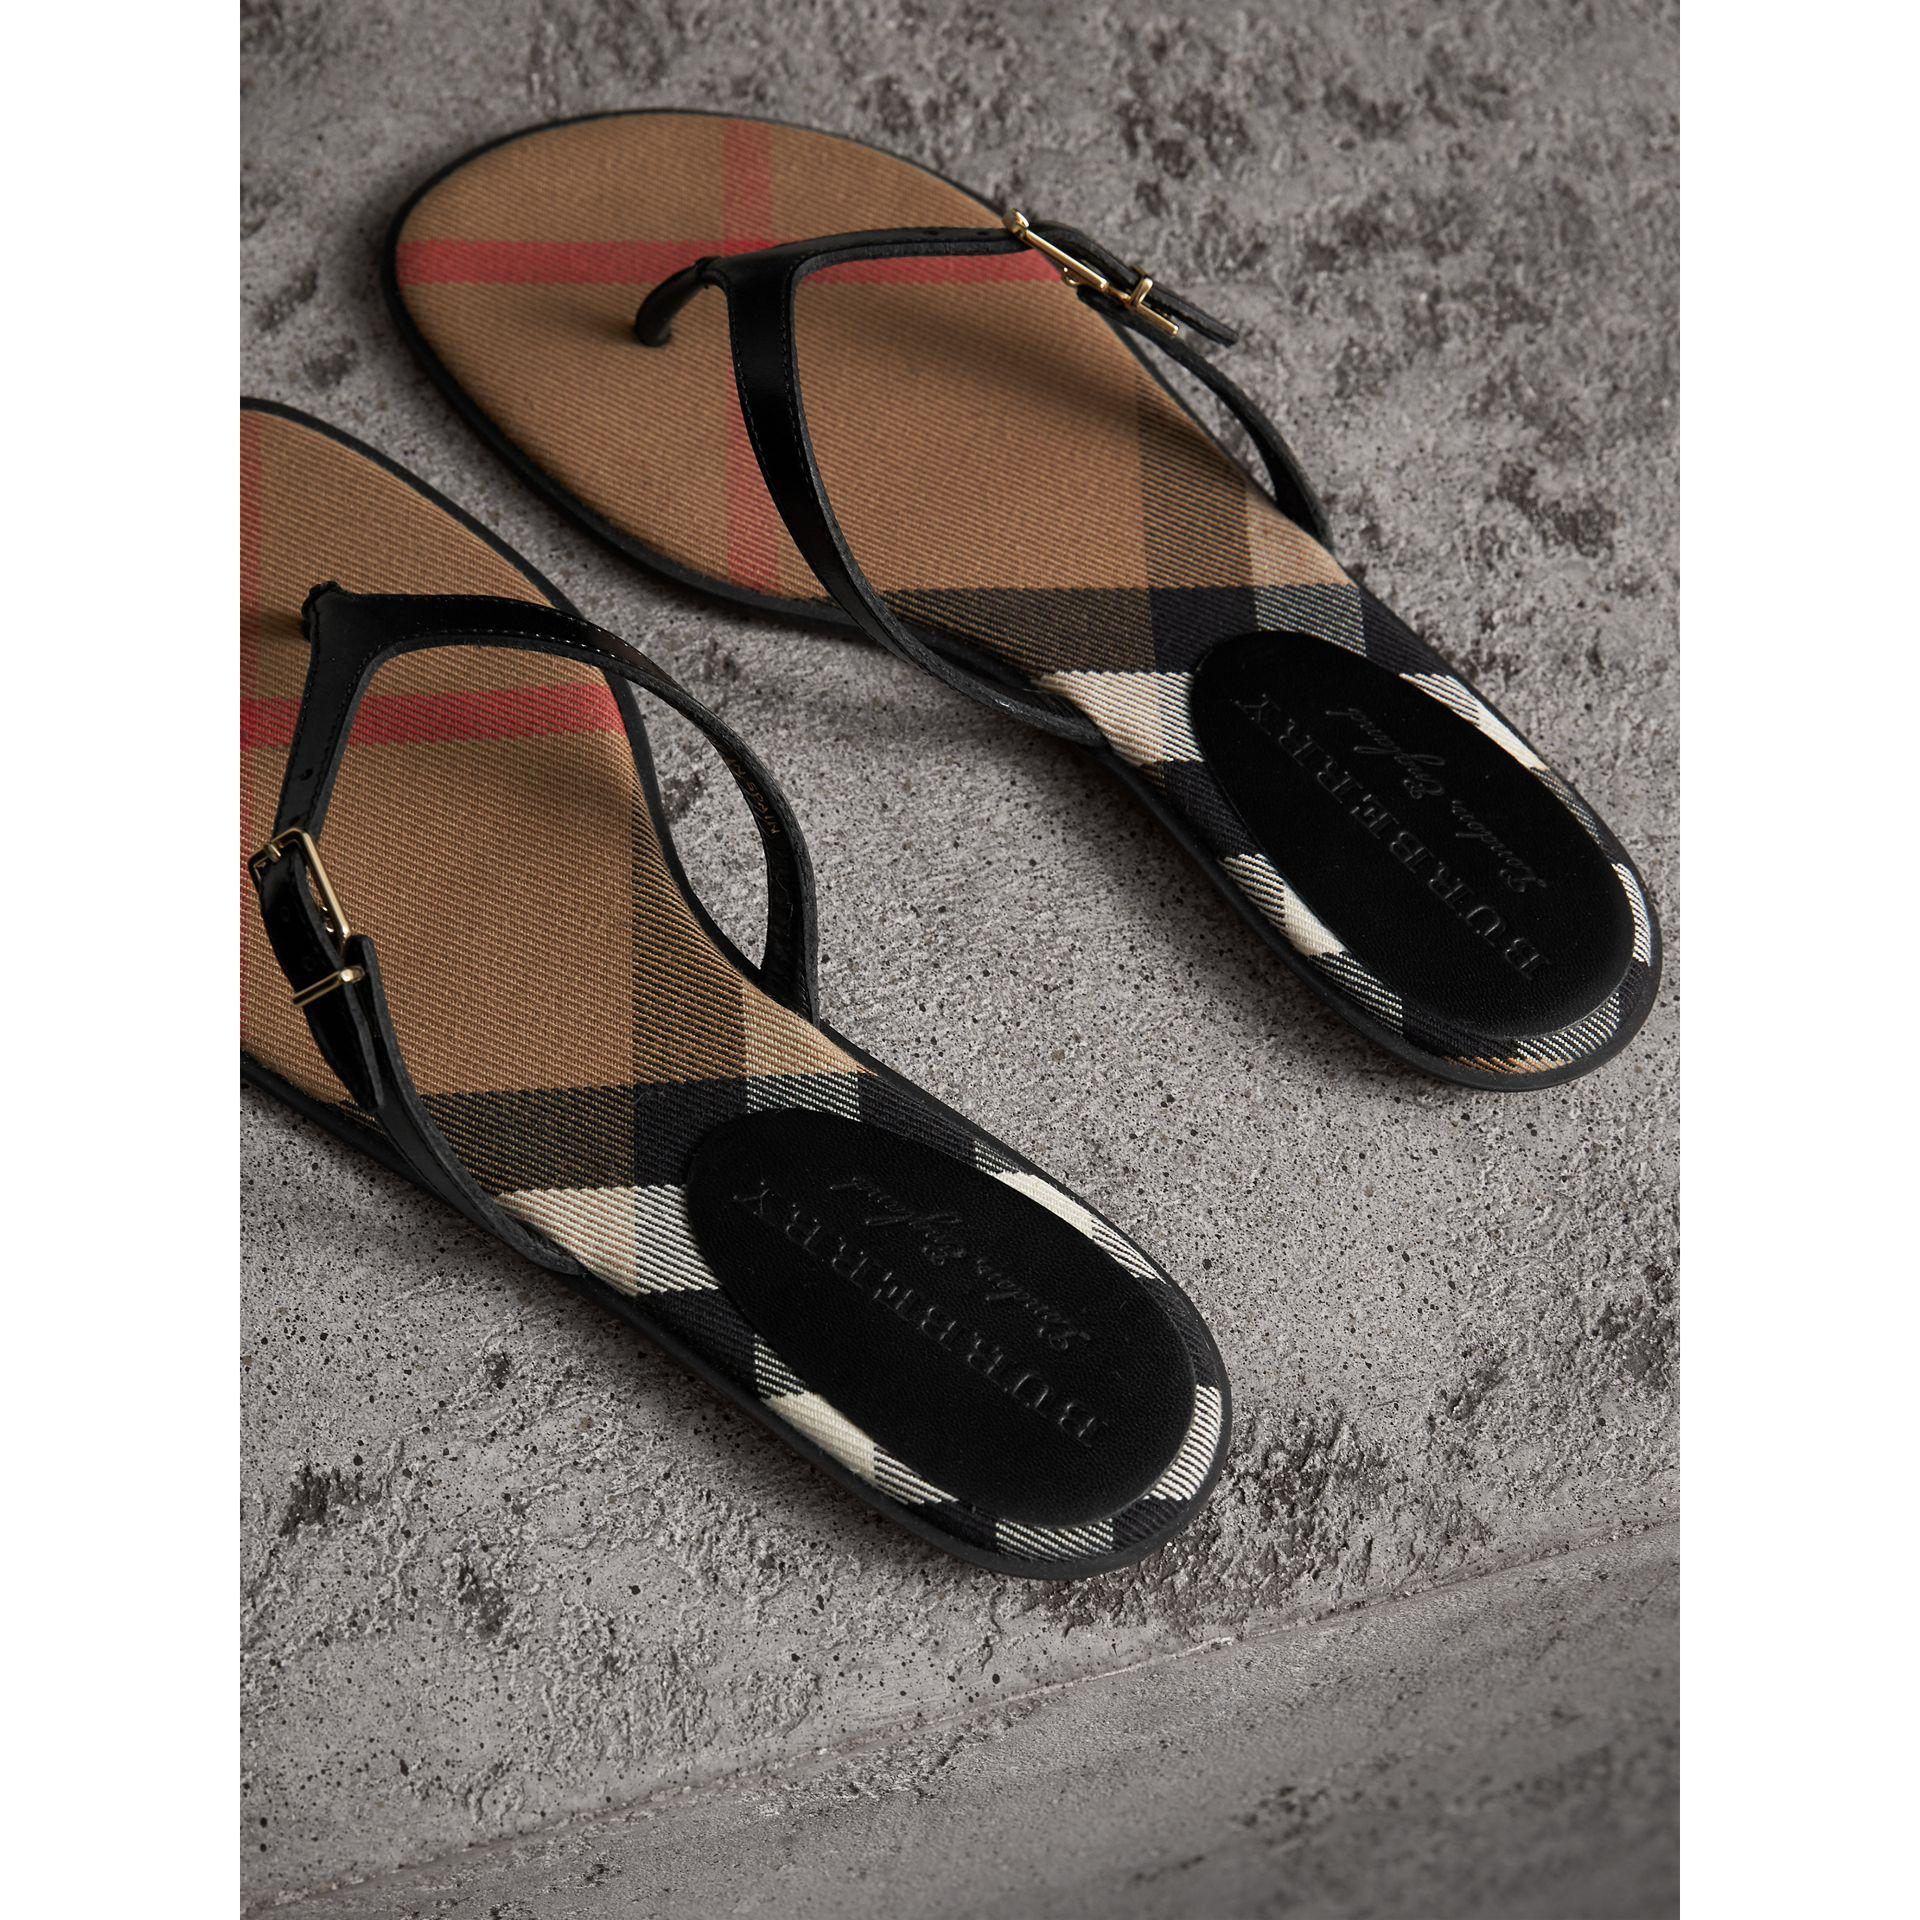 6e4e26651ff5 Lyst - Burberry House Check And Patent Leather Sandals in Black